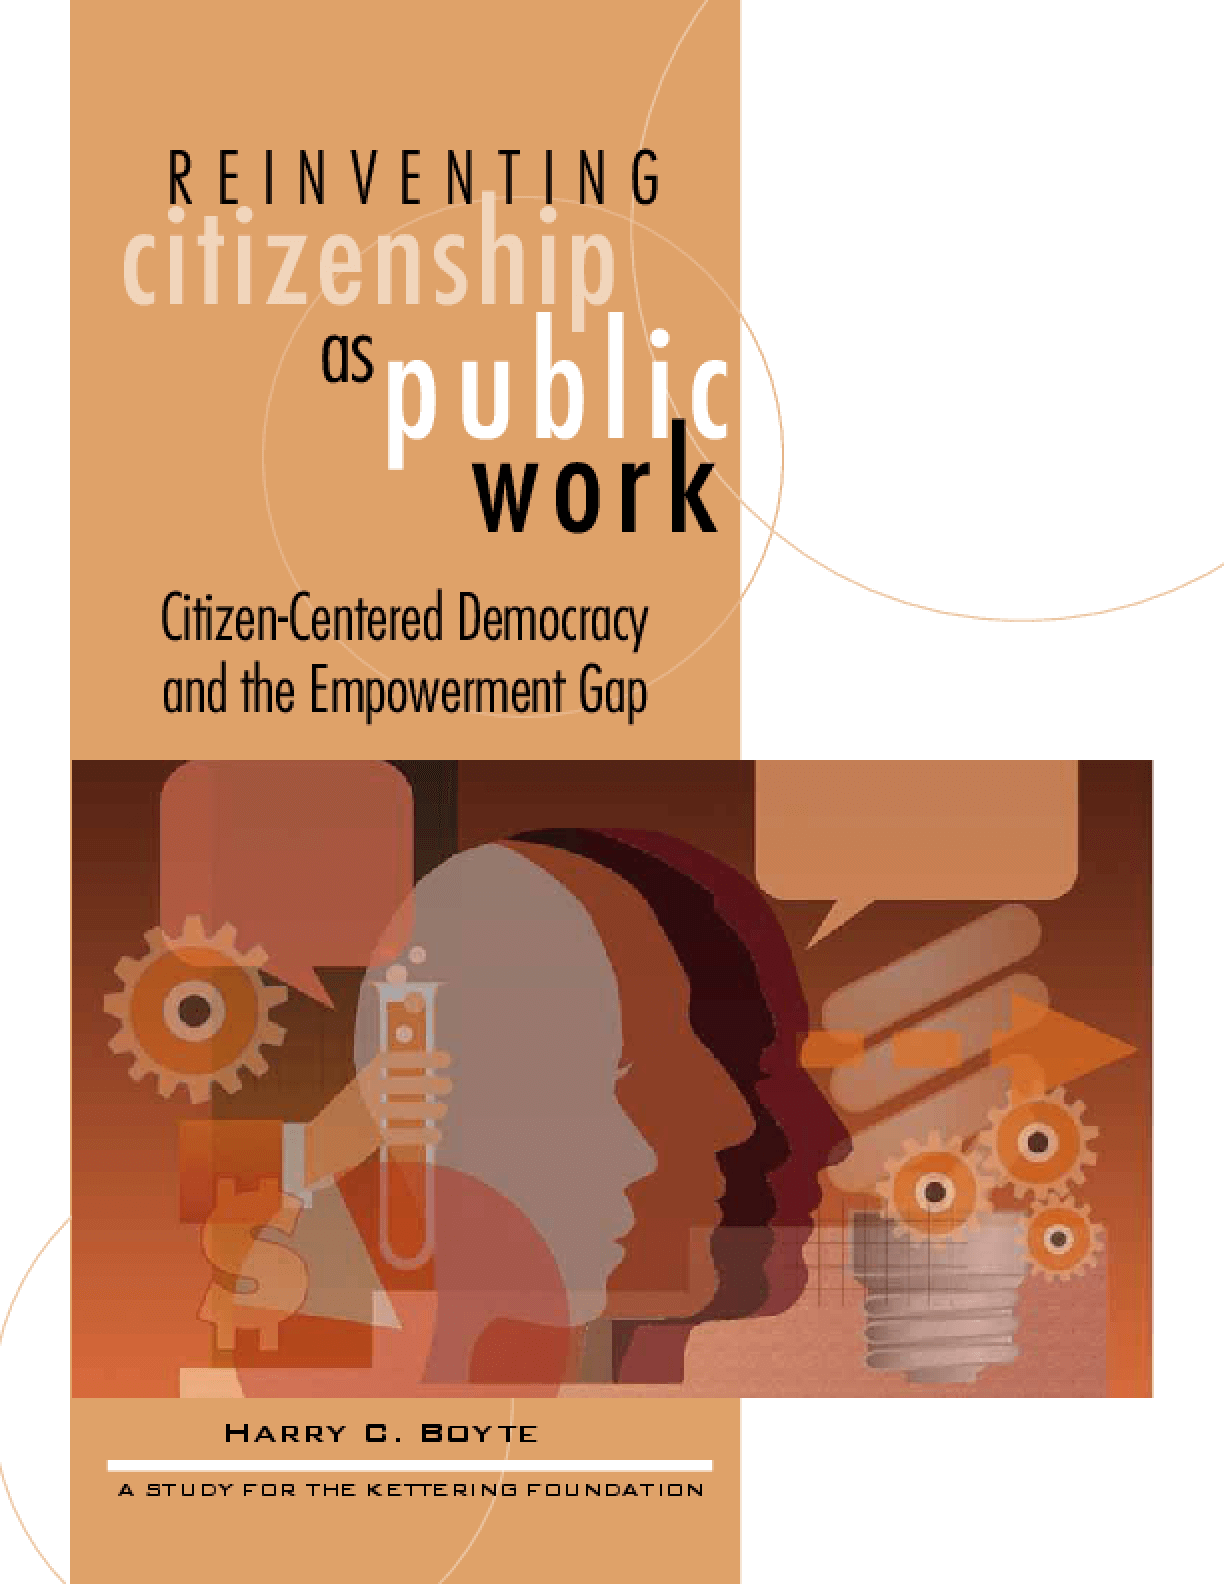 Reinventing Citizenship as Public Work: Citizen-Centered Democracy and the Empowerment Gap